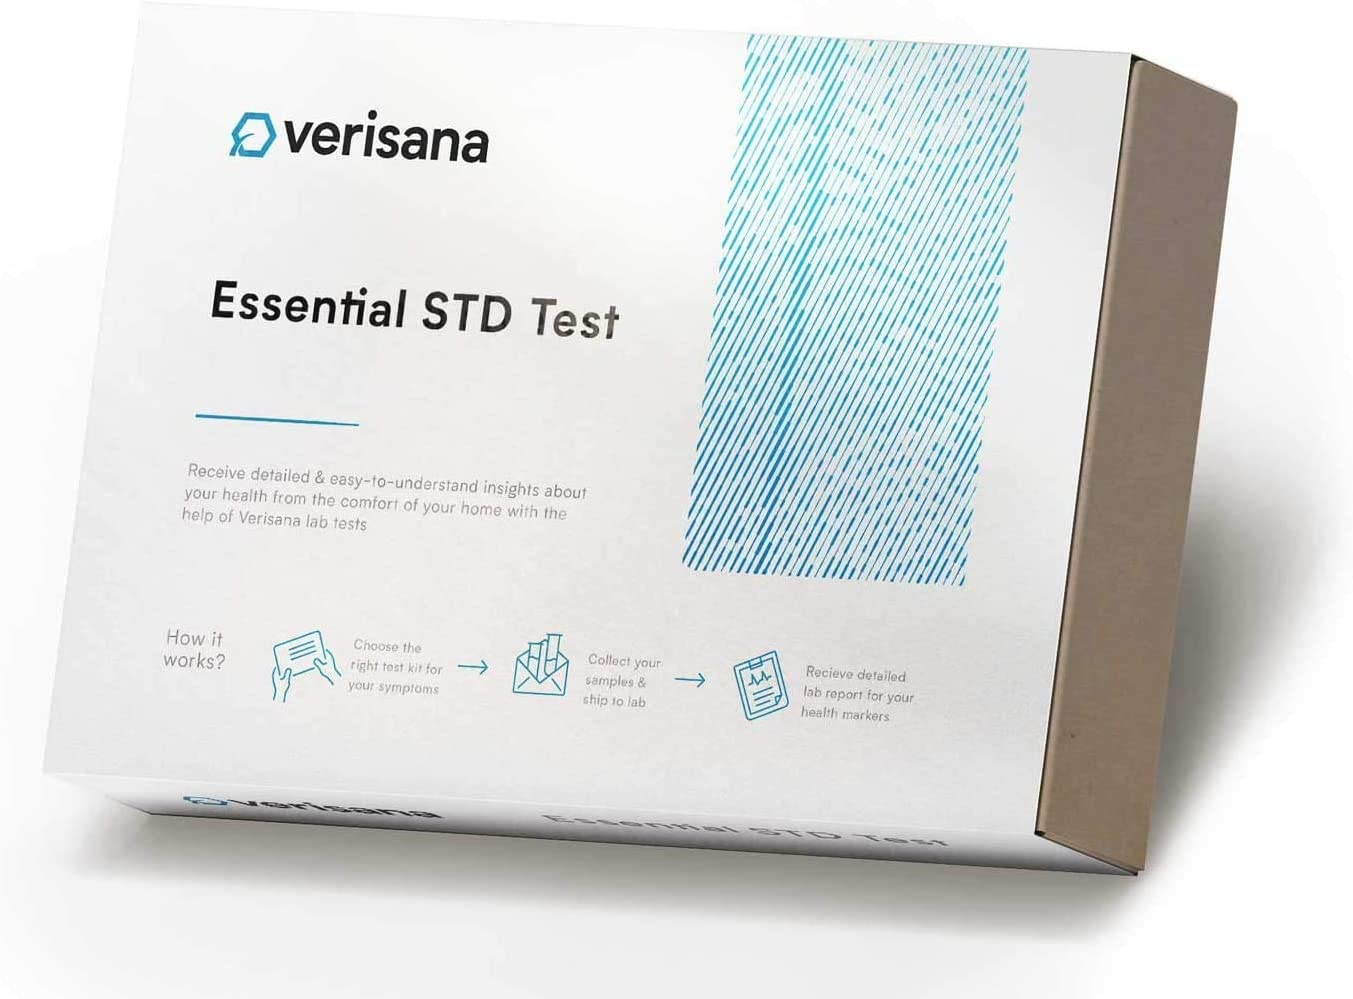 Home STD Testing Kit for Men & Women – Blood and Urine Analysis for 6 Common STDs – Verisana